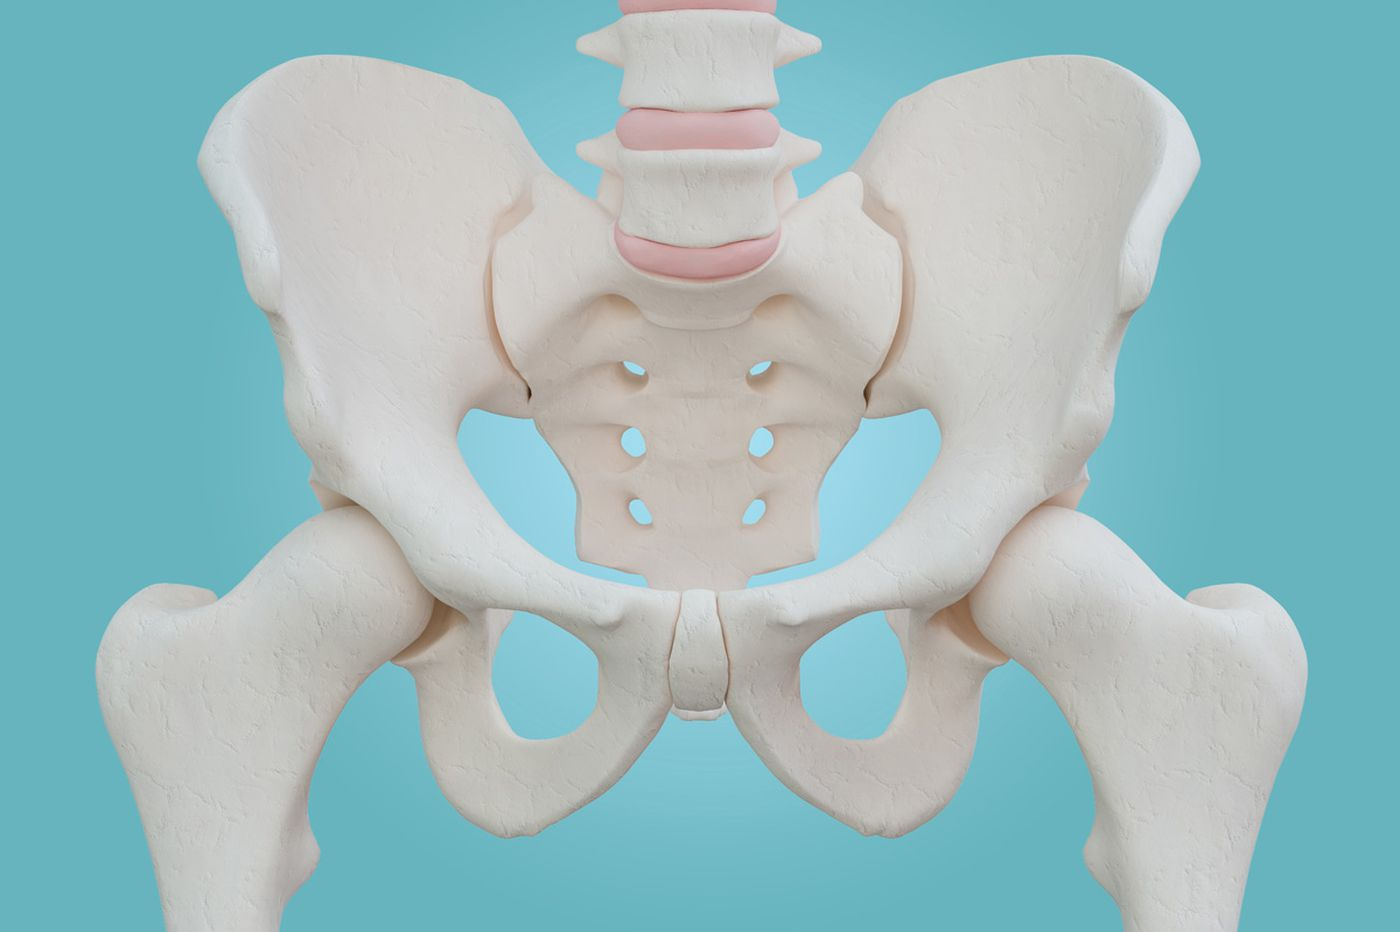 More seniors recover from hip fractures if they're treated as emergencies